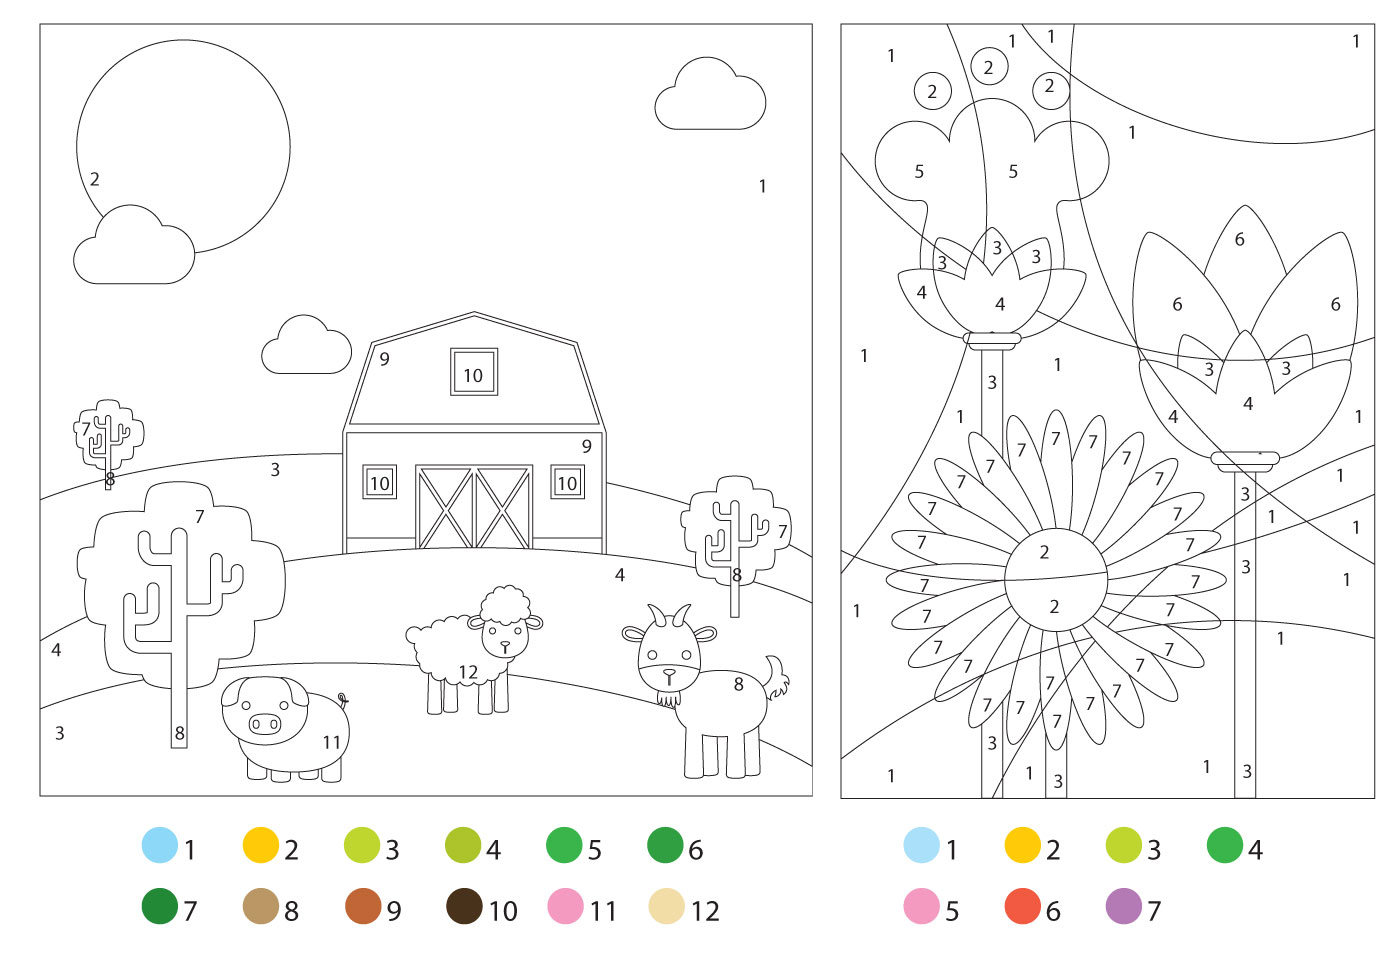 Coloring Pages With Color Guides - Download Free Vector Art, Stock ...